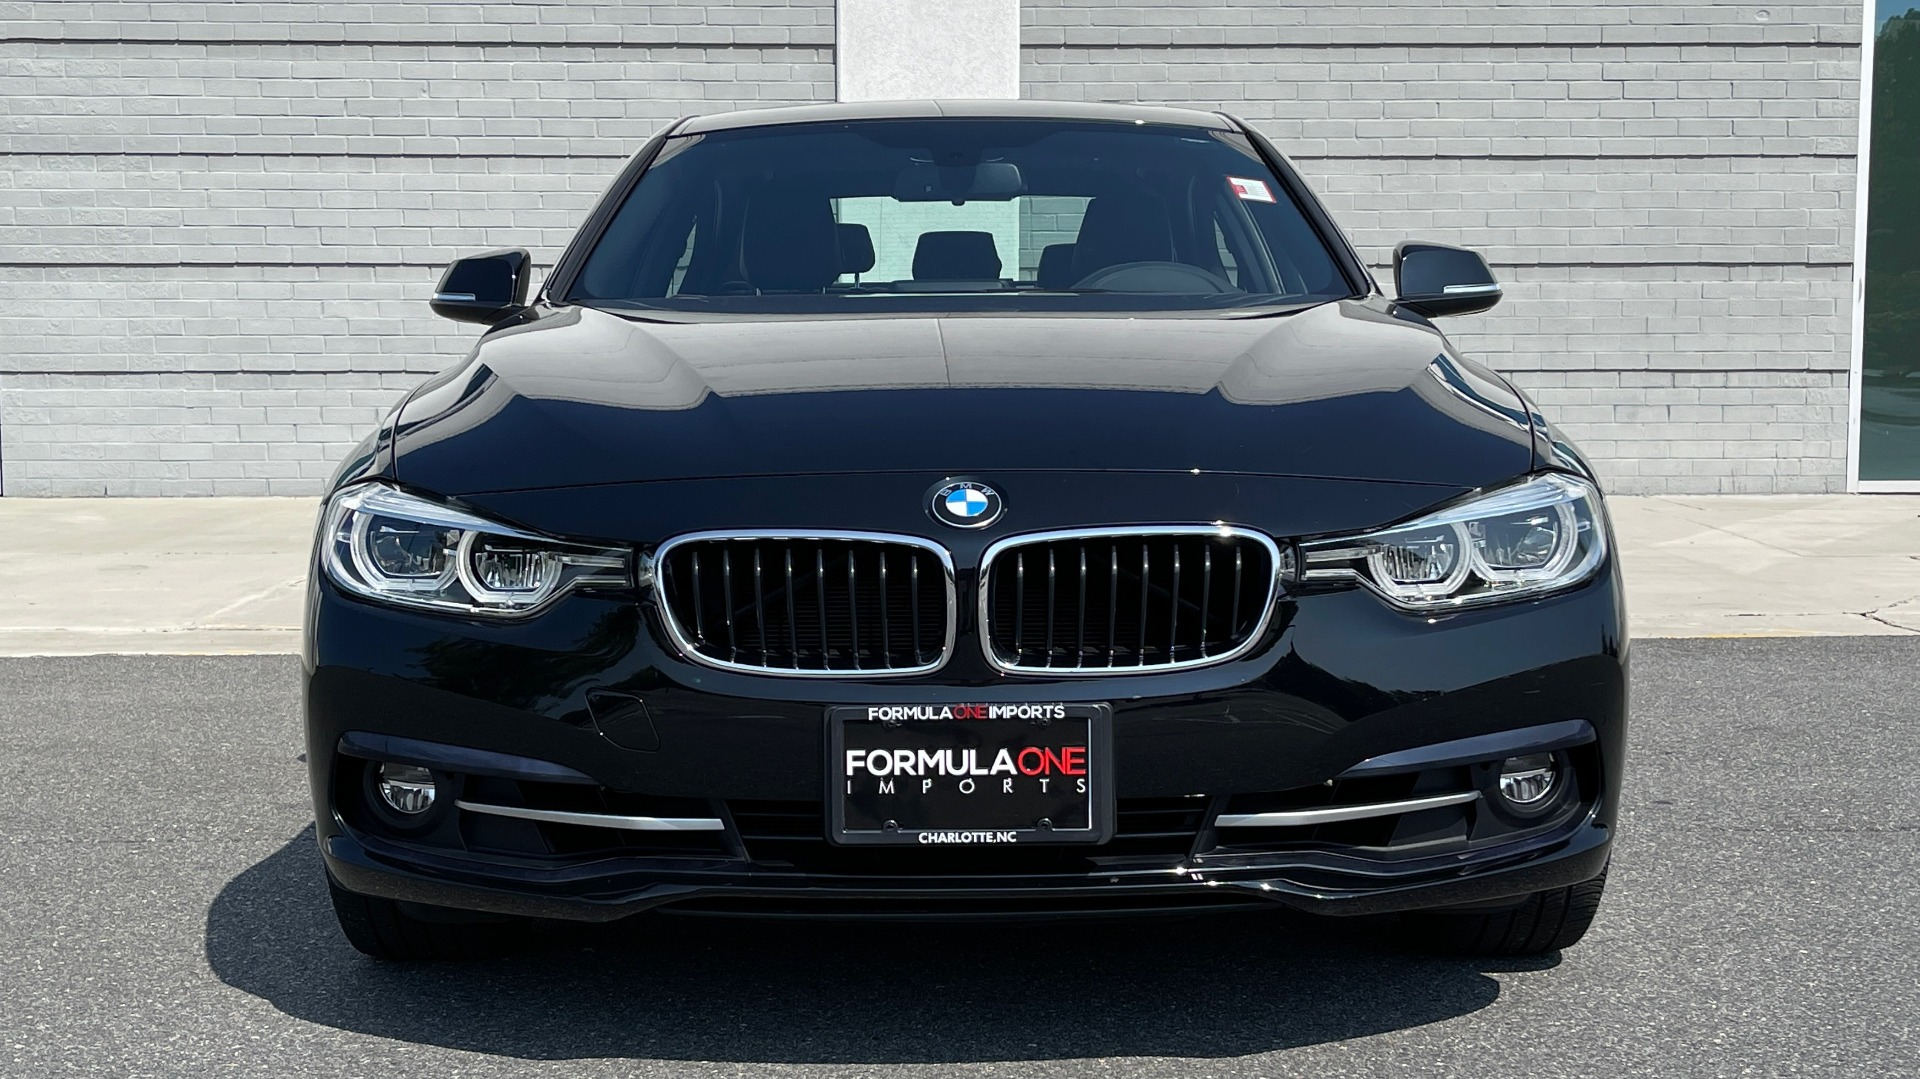 Used 2018 BMW 3 SERIES 330I XDRIVE / CONV PKG / SUNROOF / HTD STS / ABSD / REARVIEW for sale $30,695 at Formula Imports in Charlotte NC 28227 11